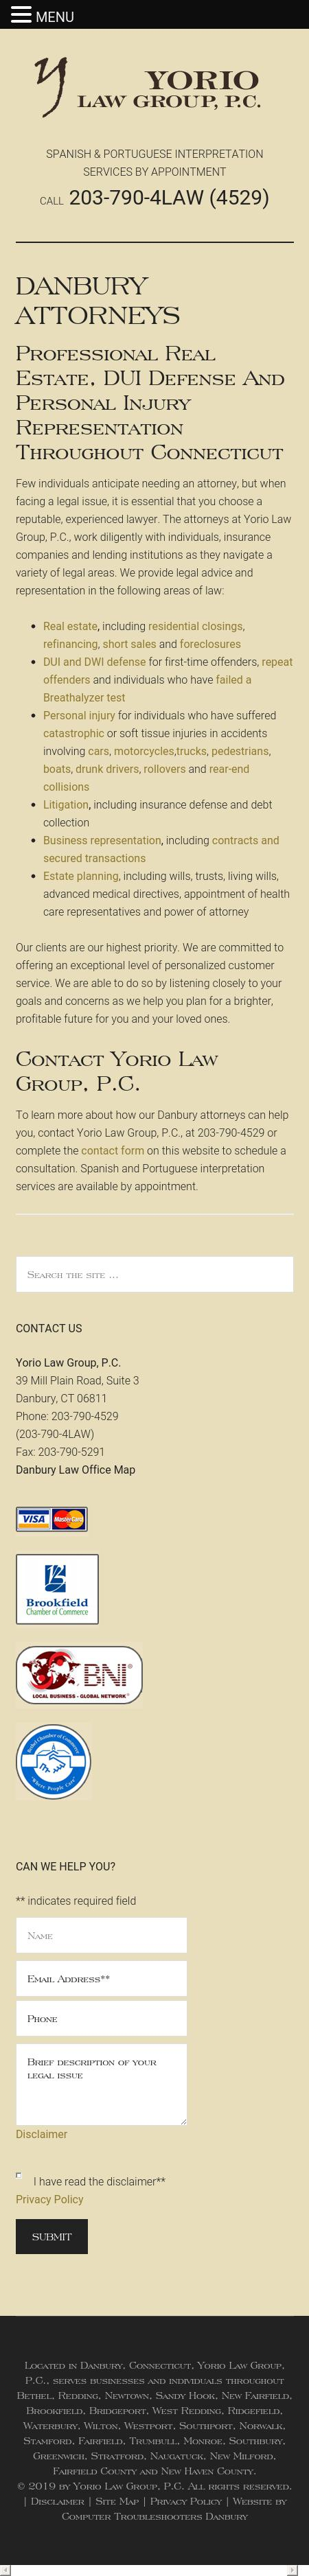 Yorio Law Group, P.C. - Westport CT Lawyers